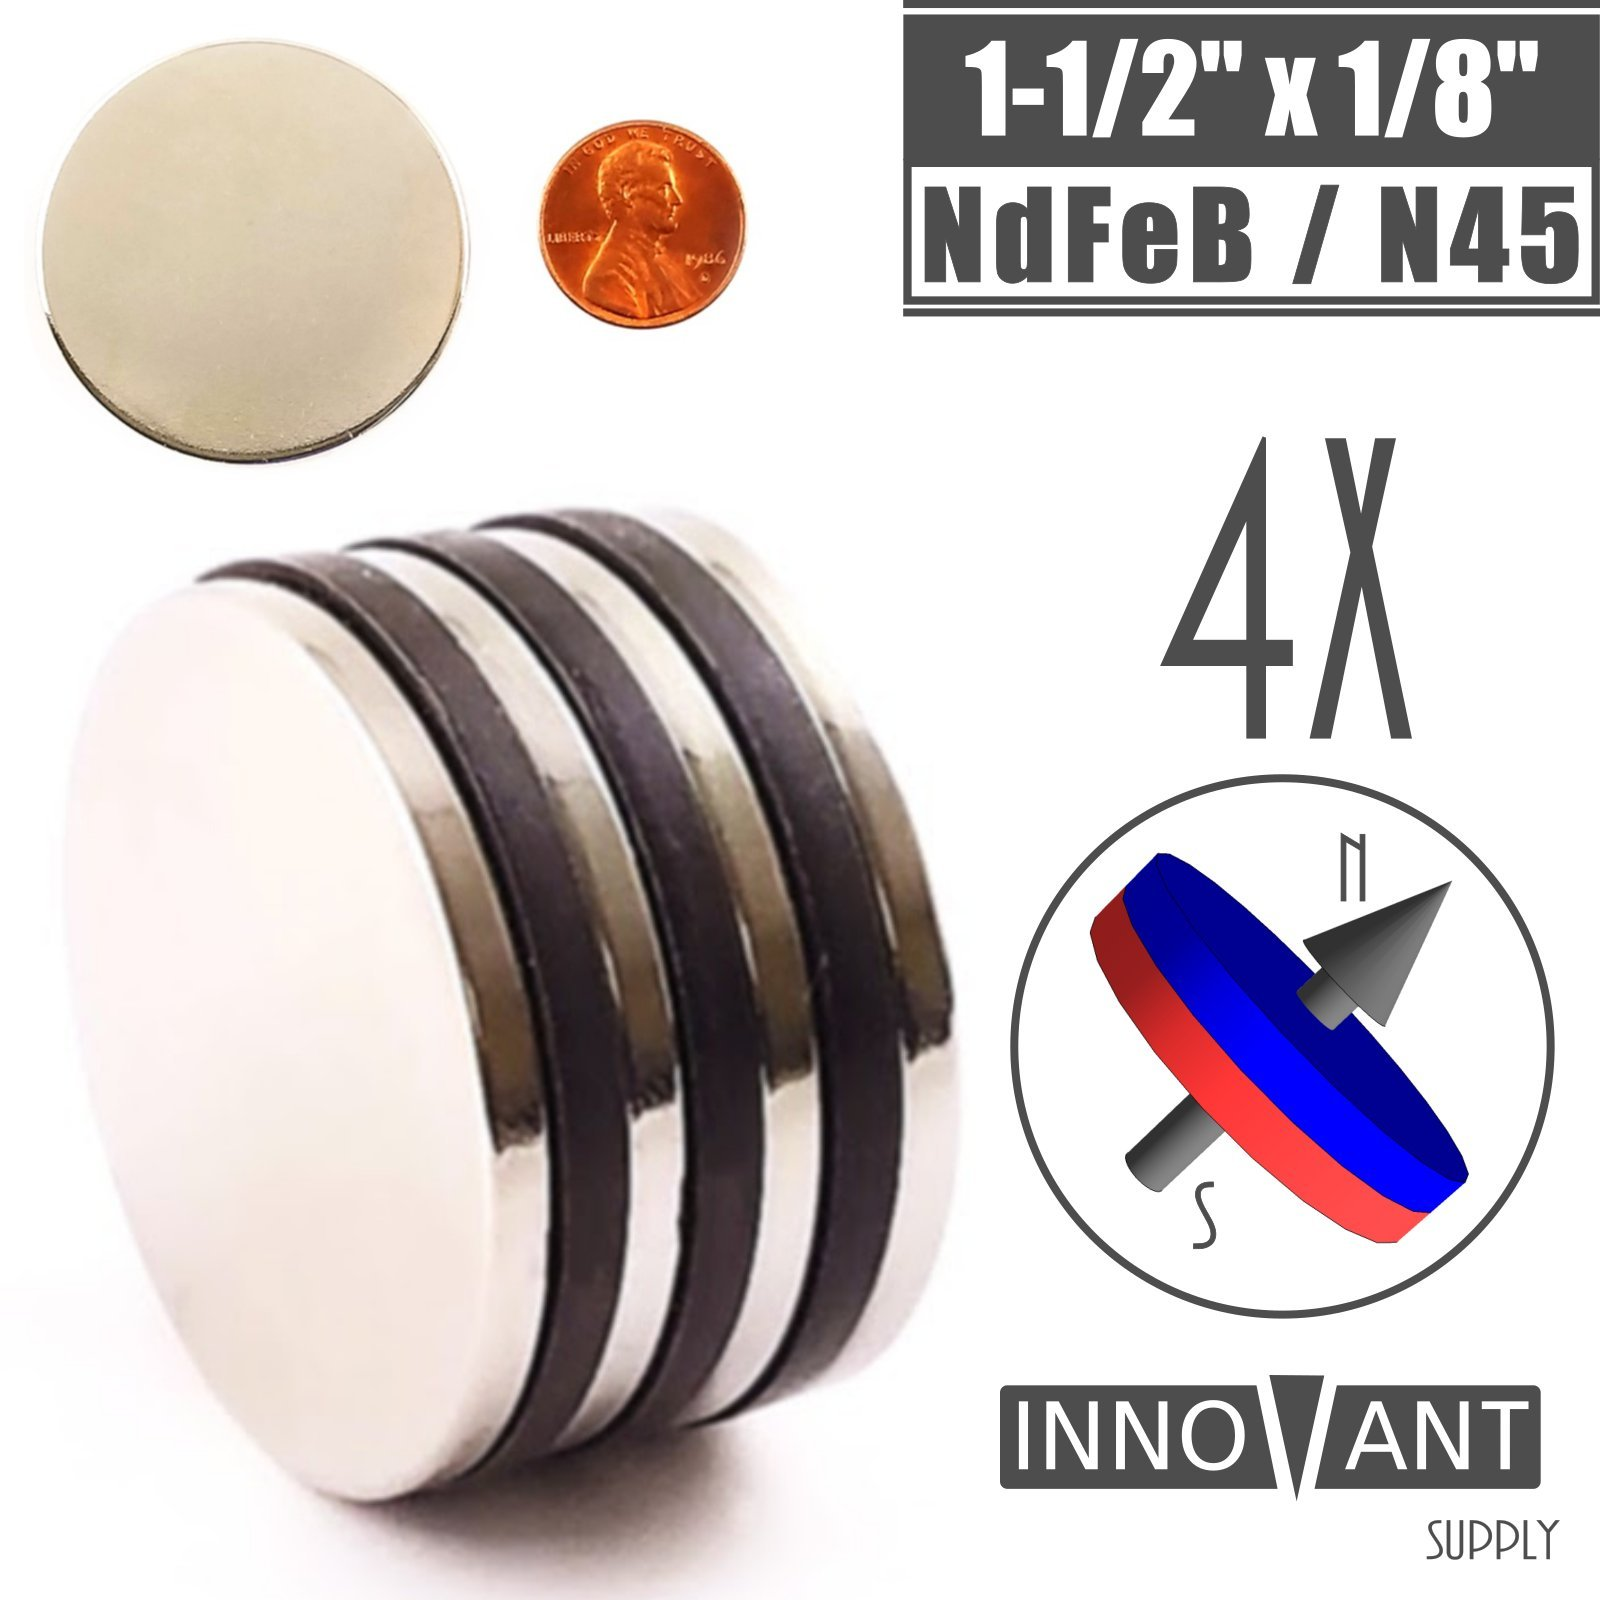 INNOVANT 4 Pack Neodymium Disc Magnets 1 1/2'' d x 1/8'' h N45 Grade Strong Permanent Rare Earth Magnets - Best for DIY Arts & Crafts Projects, School Classroom Science Project & Office or Work Supply by Innovant Supply (Image #1)